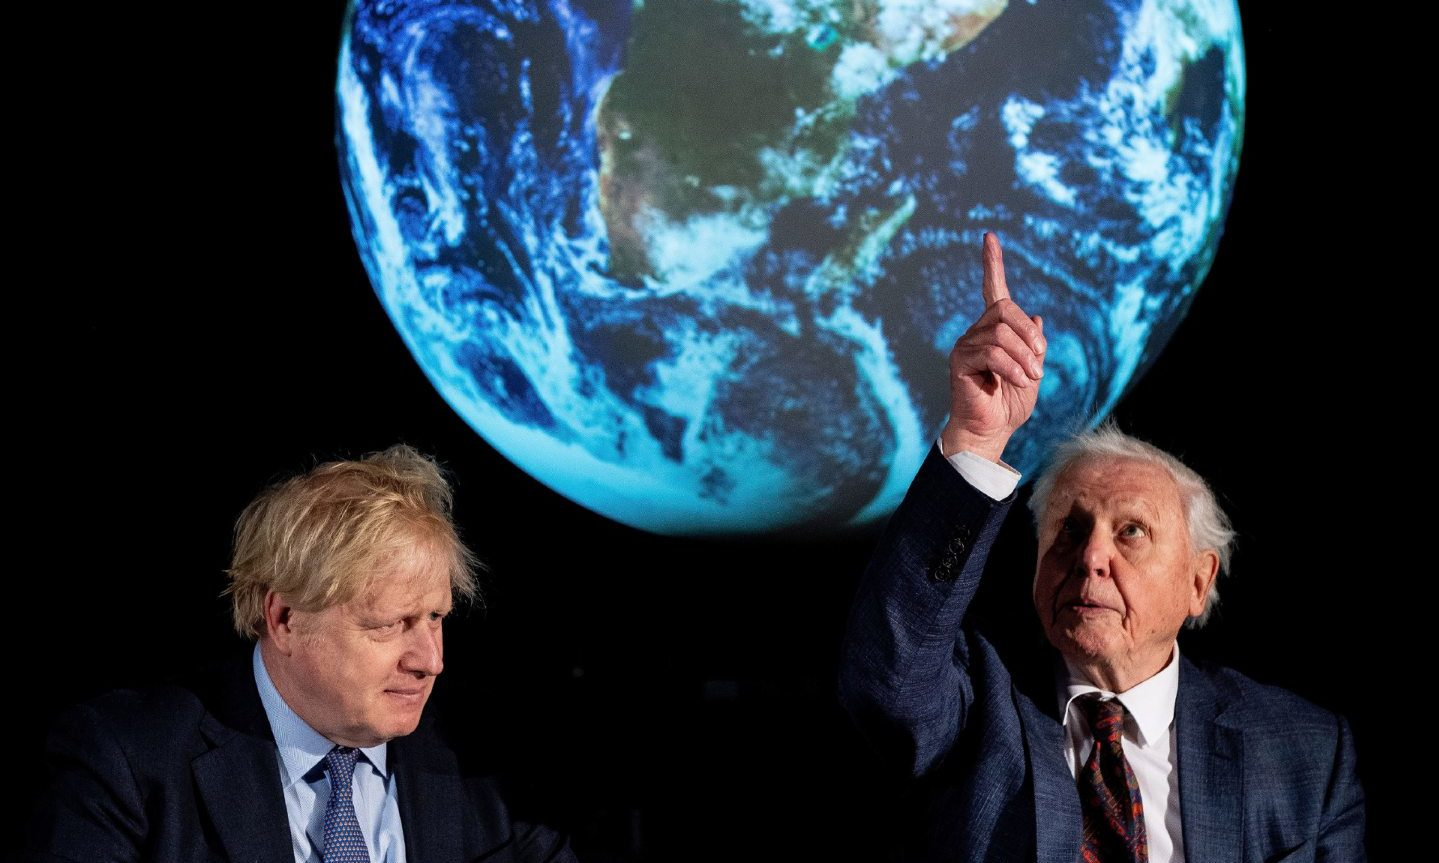 Boris Johnson and Sir David Attenborough in February at the launch of the now postponed COP26 UN Climate Summit